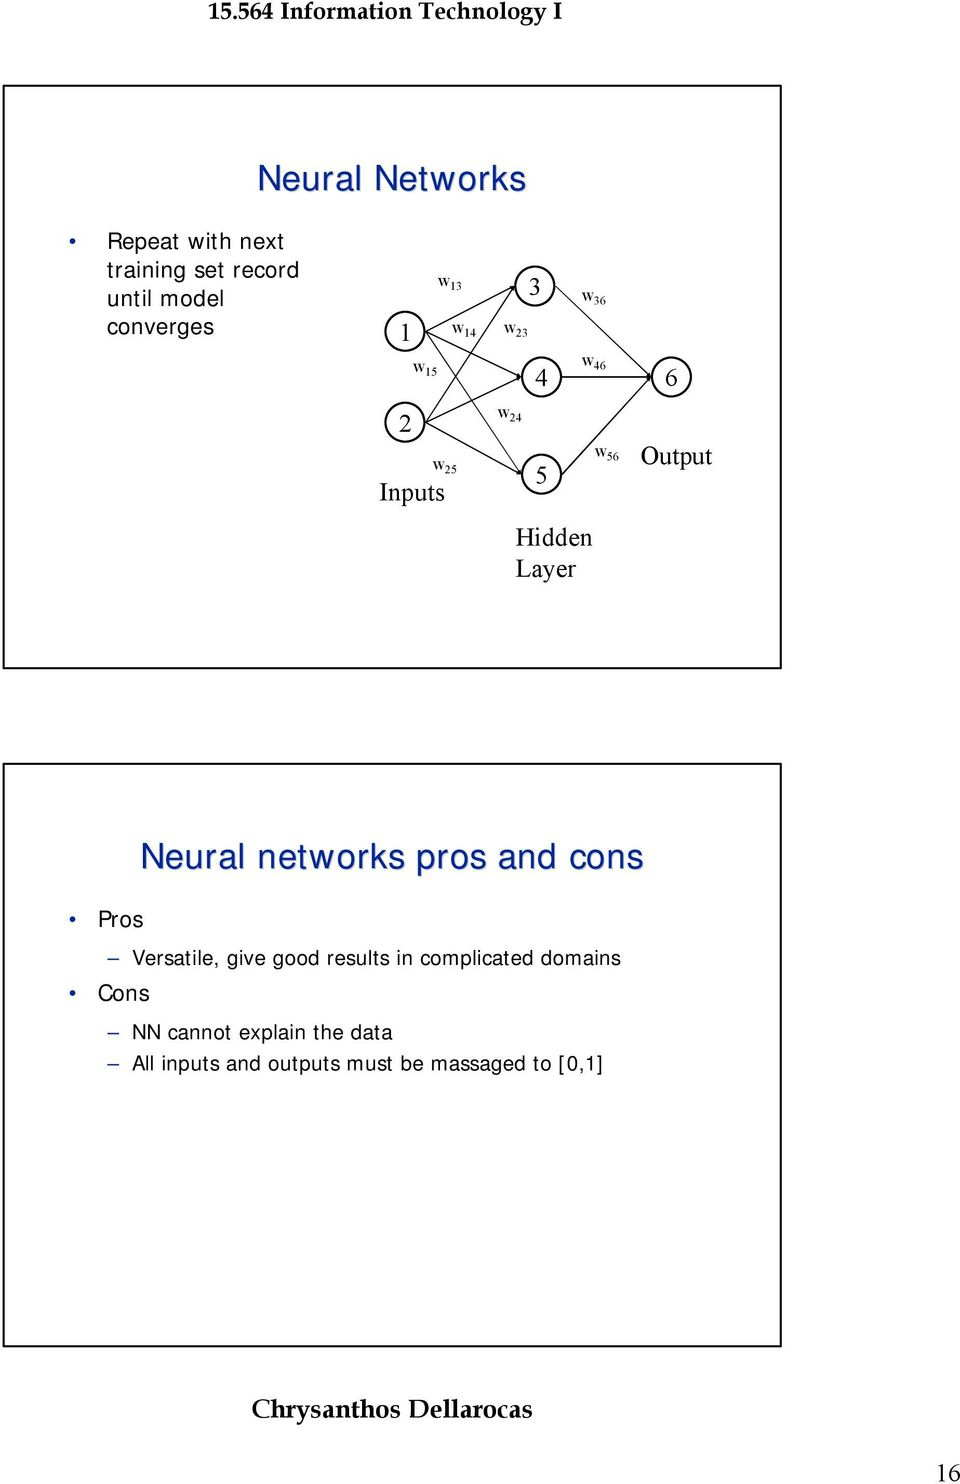 Neural networks pros and cons Versatile, give good results in complicated domains